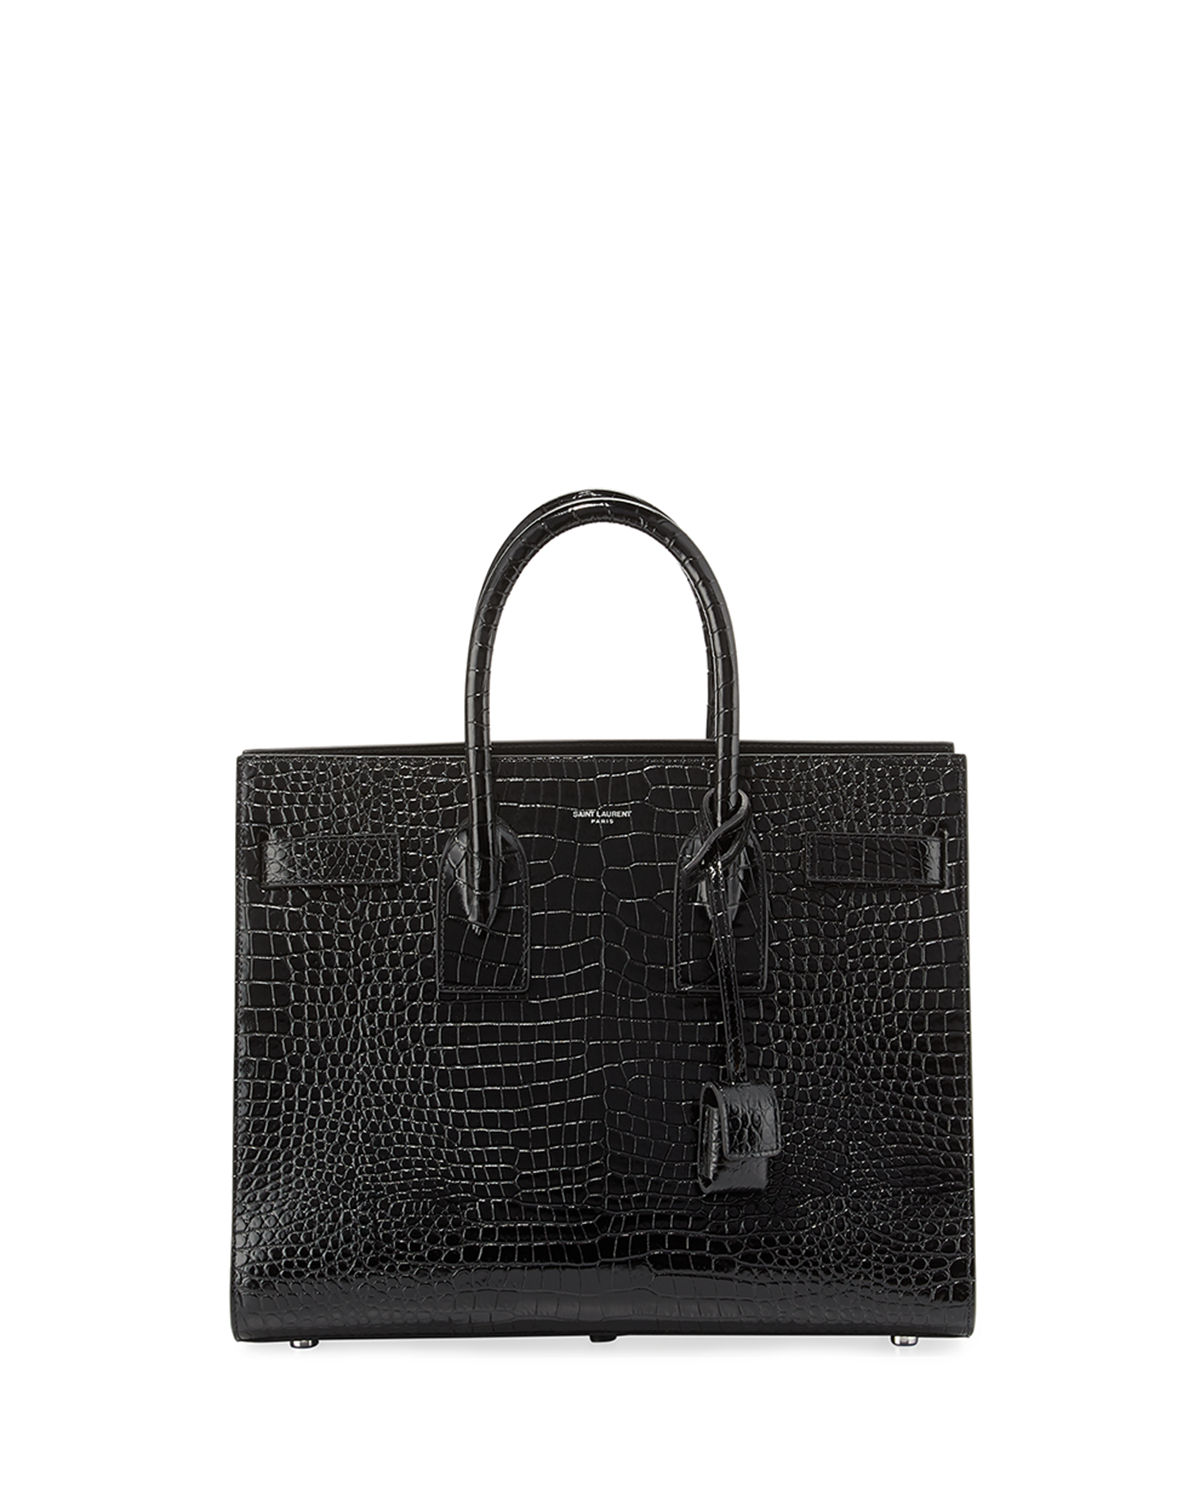 1391cb705 Saint Laurent Sac de Jour Small Crocodile-Embossed Satchel Bag - Silver  Hardware